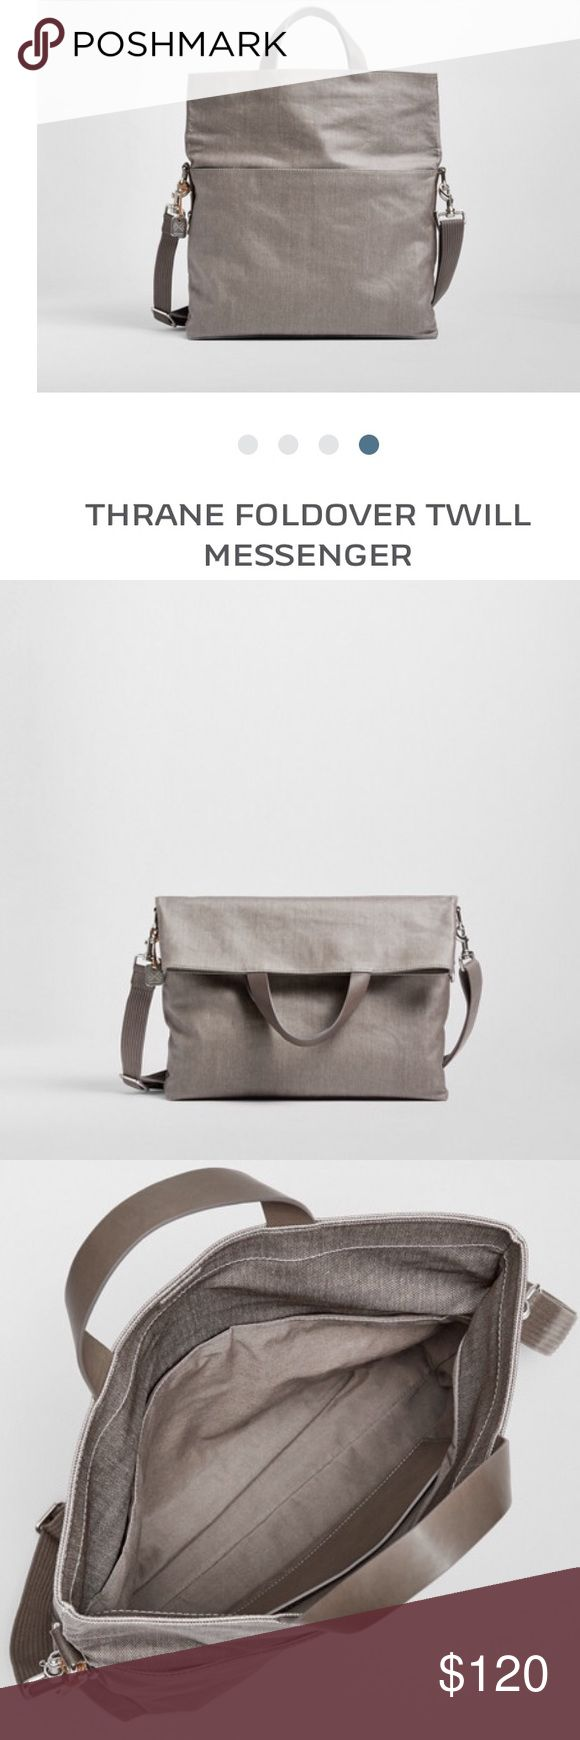 """Skagen Thrane fold over messenger bag The Thrane features a spacious interior packed with pockets and compartments. Lift the foldover flap to carry as a tote, exposing a slip pocket on the front and a zip pocket on the back. The bag's main compartment contains a padded 15-inch laptop sleeve, two slip pockets and a pen holder. Where coated, the bag's twill material is resistant to water.Material:Twill-100% cotton. Leather Grab handle. 27.56"""" Shoulder Drop. Worn once. Has marker line inside to…"""